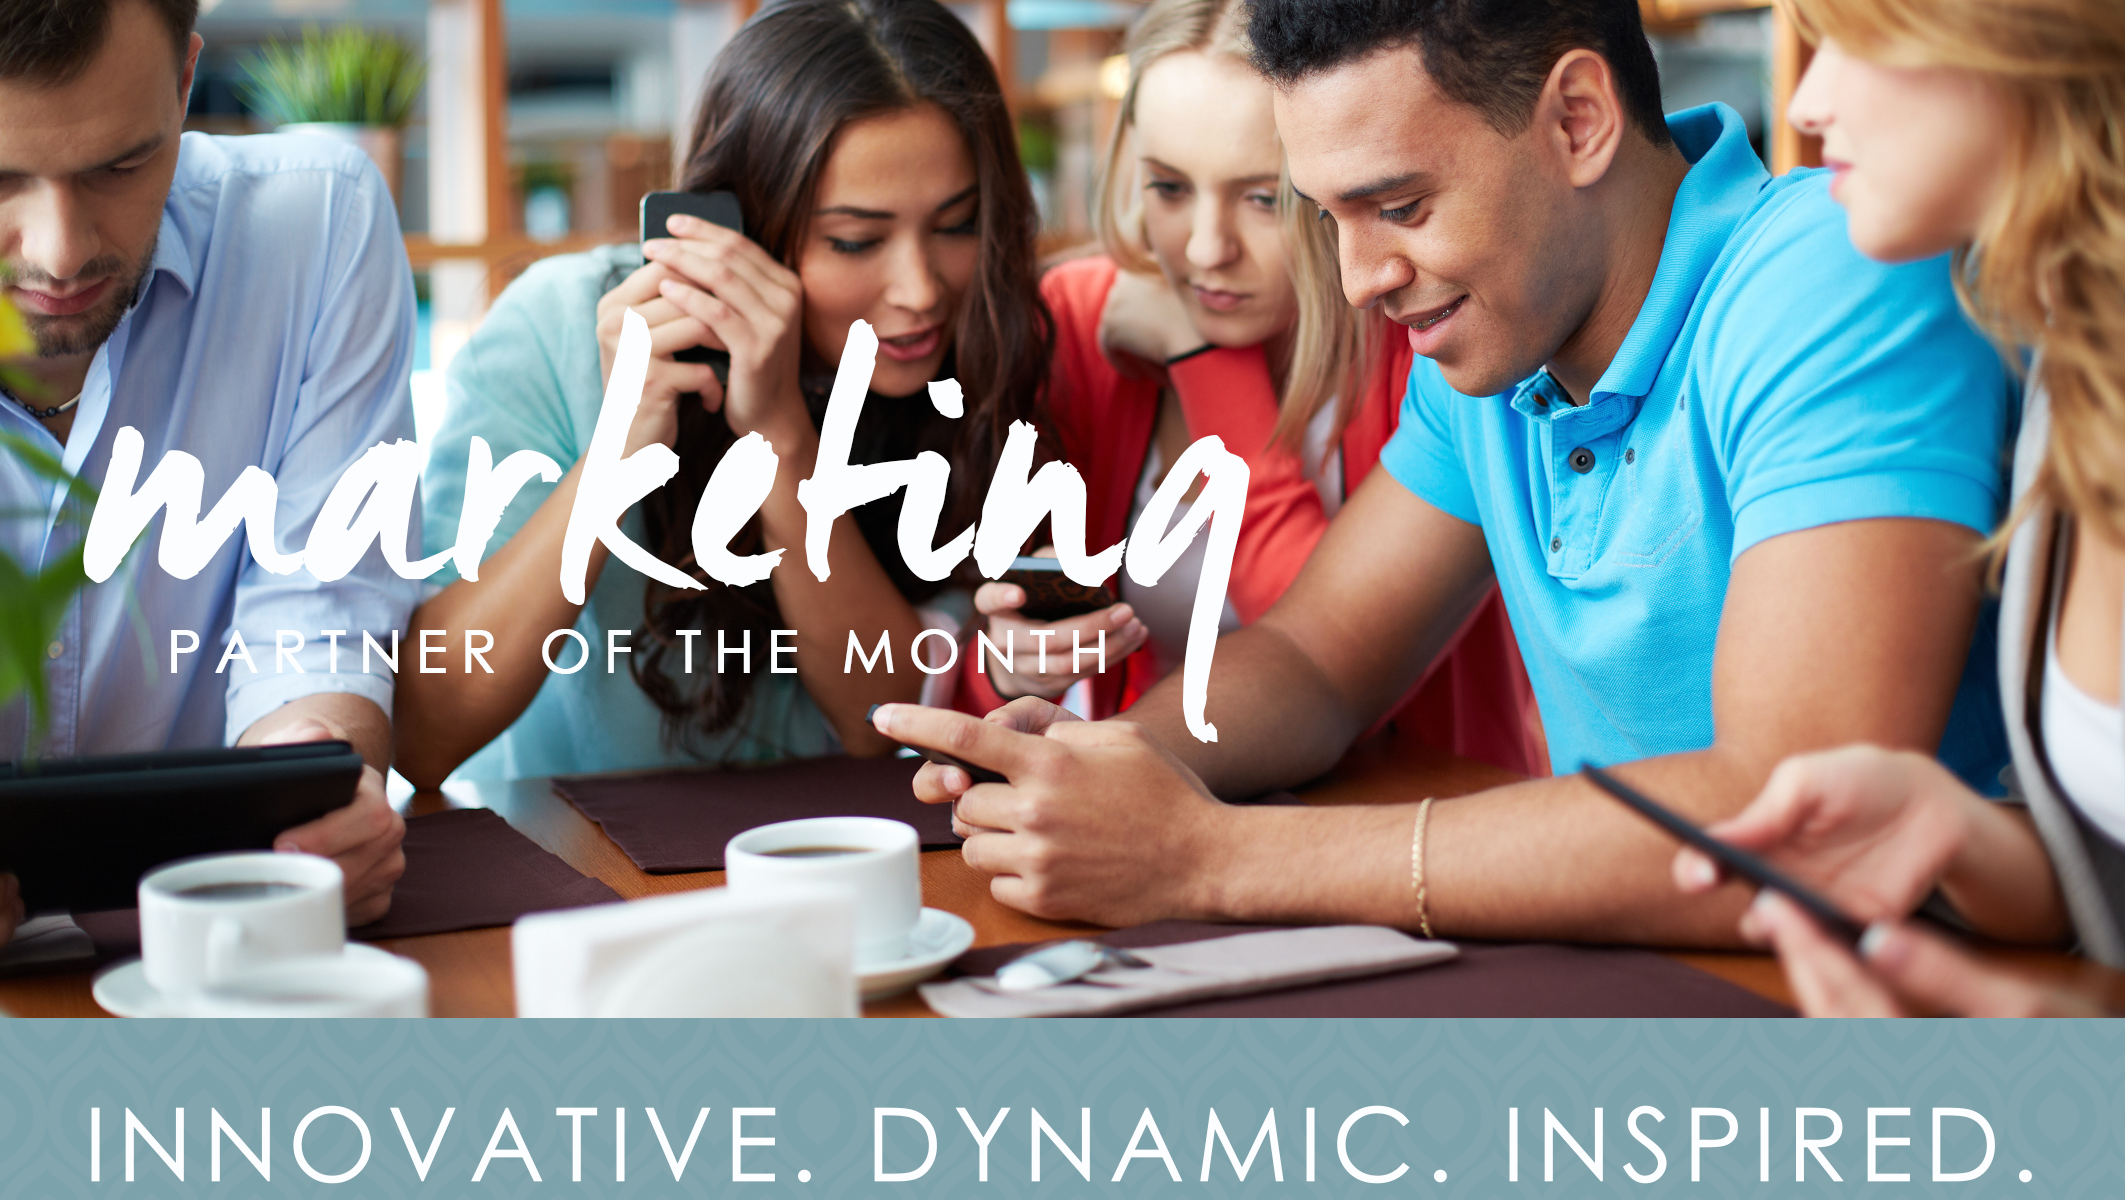 Congratulations to Contact At Once, LPC's Marketing Partner of the Month!